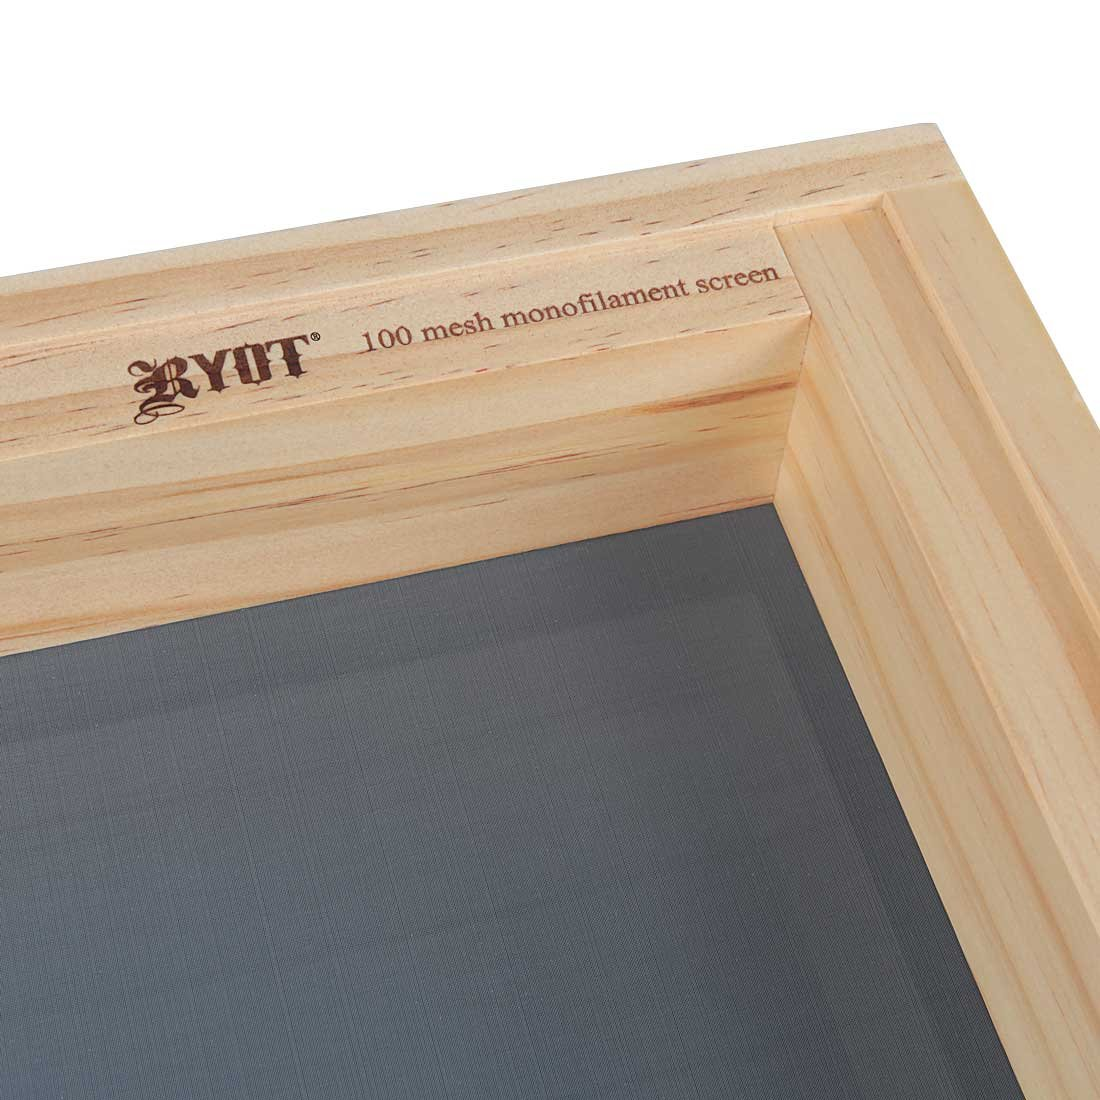 RYOT 15x15 ''Growers Box'' XL Natural Finish Wooden Pollen Sifting Box with Monofilament Screen by RYOT (Image #5)